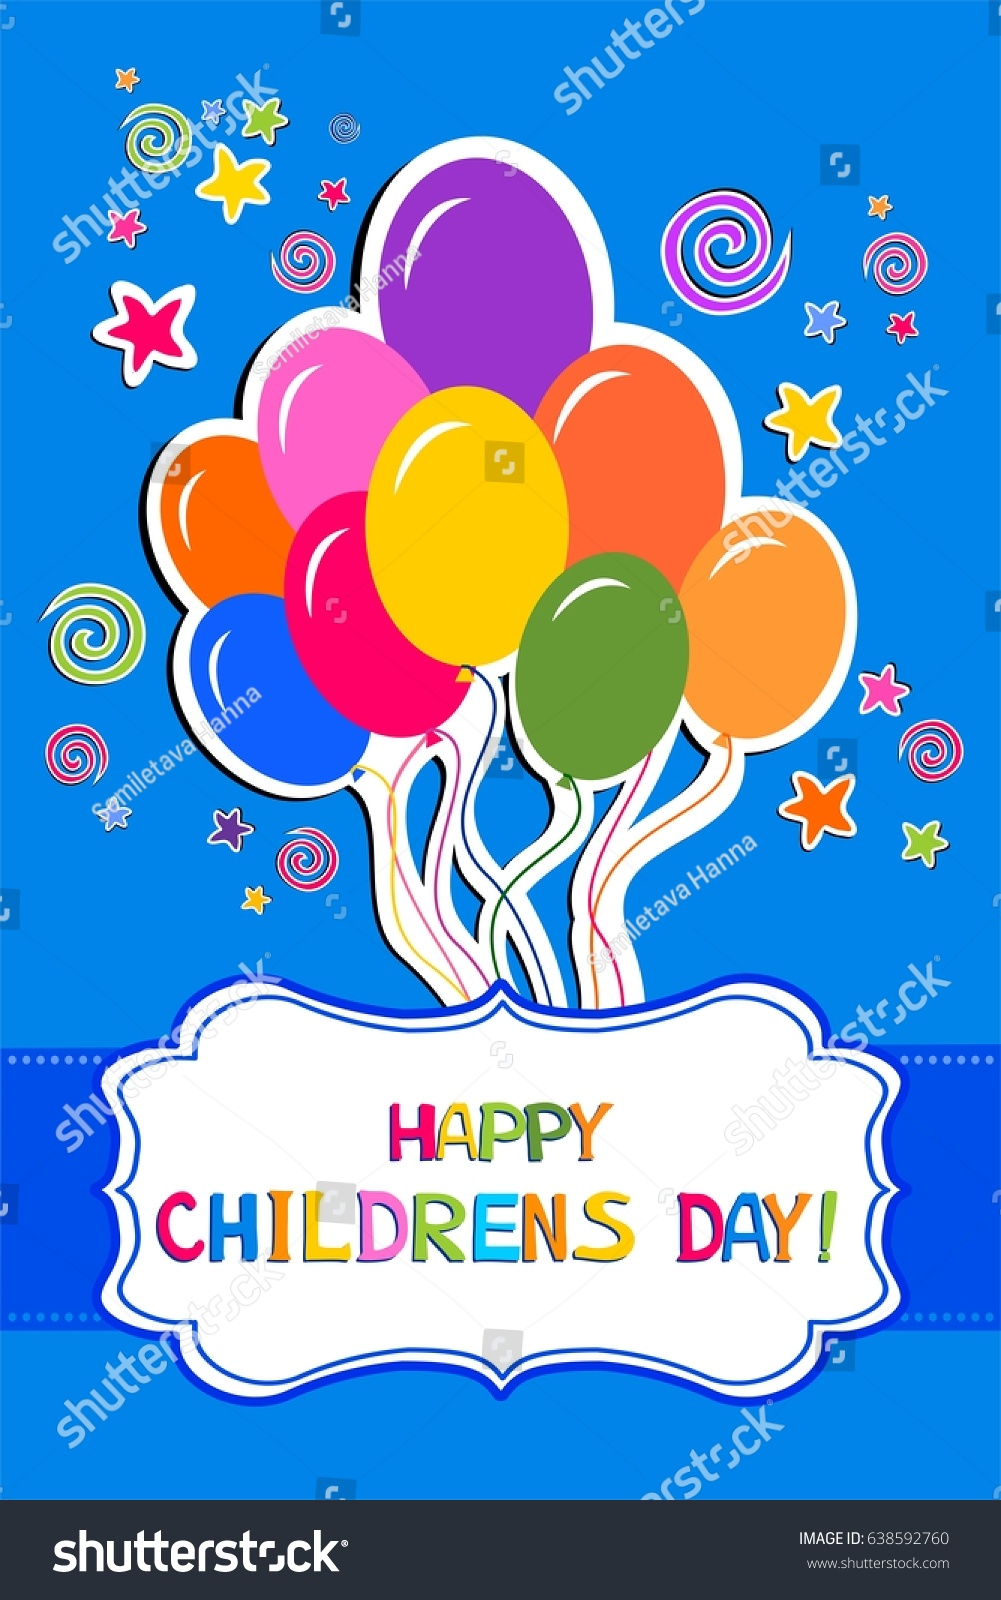 Happy Children Day Celebration Blue Greeting Stock Vector Royalty